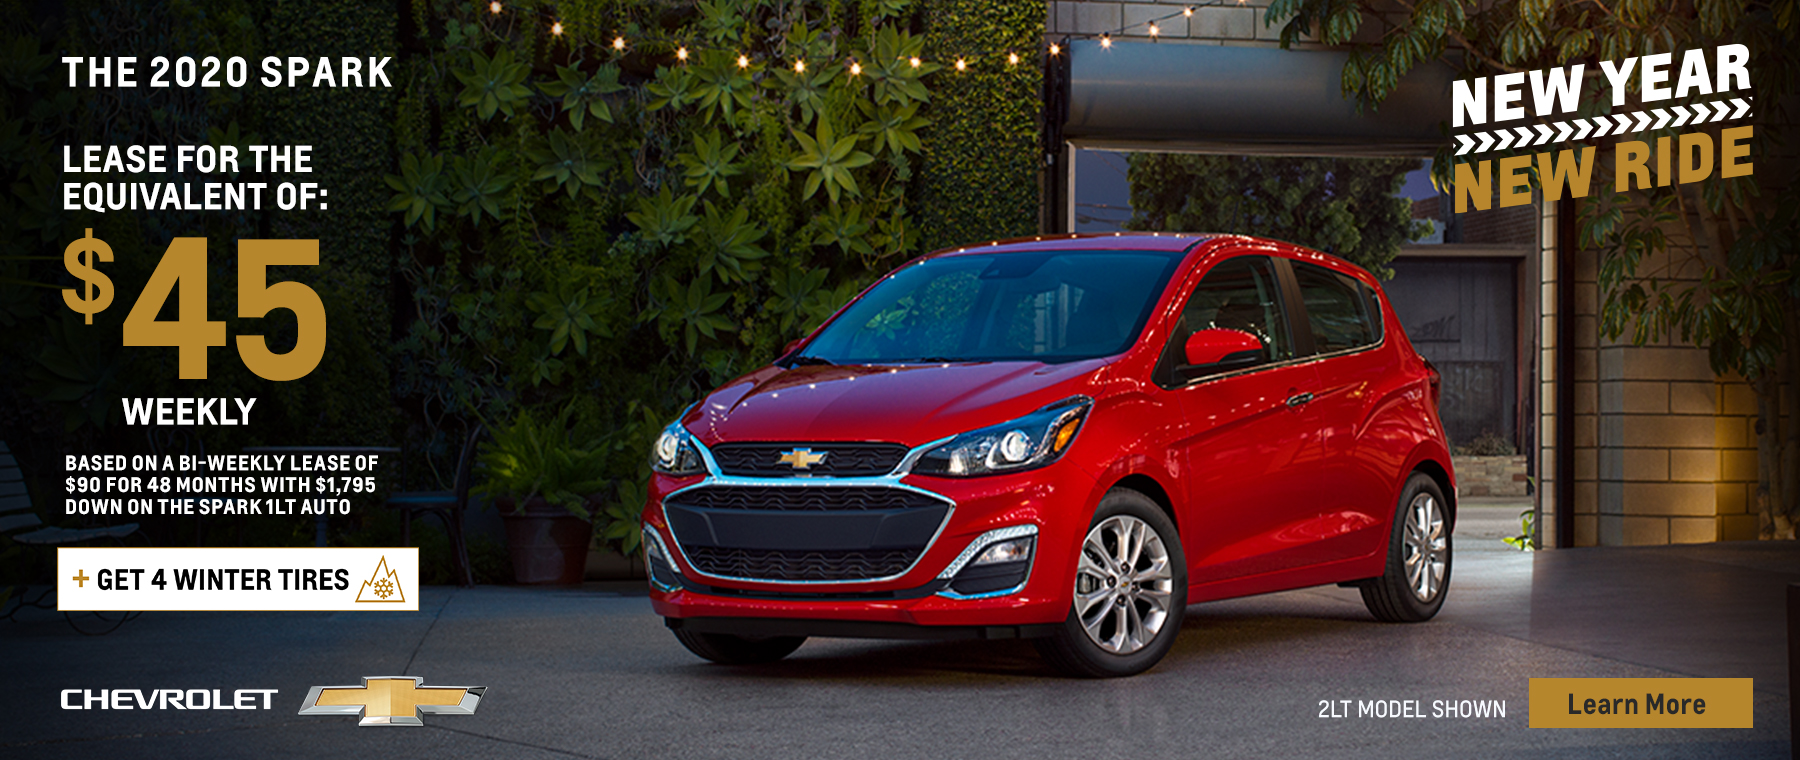 New Year, New Ride 2020 Chevy Spark